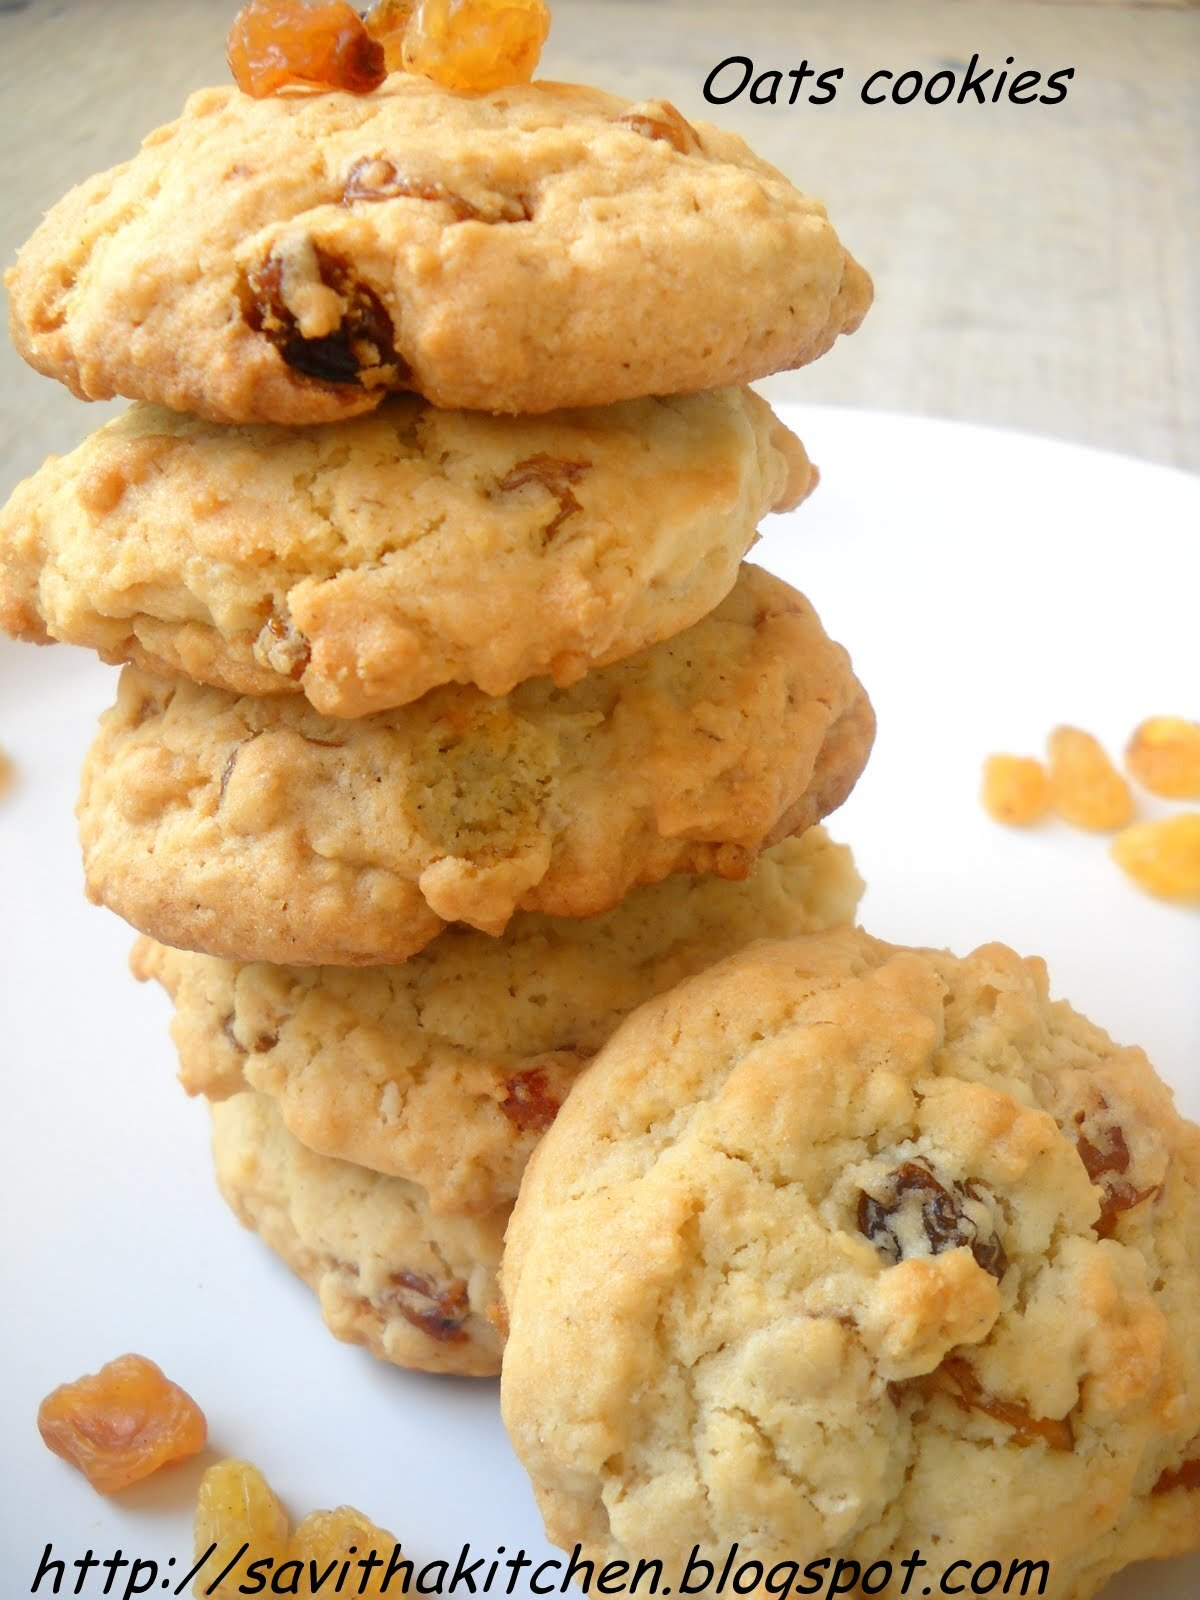 Oats Cookies with raisin topping